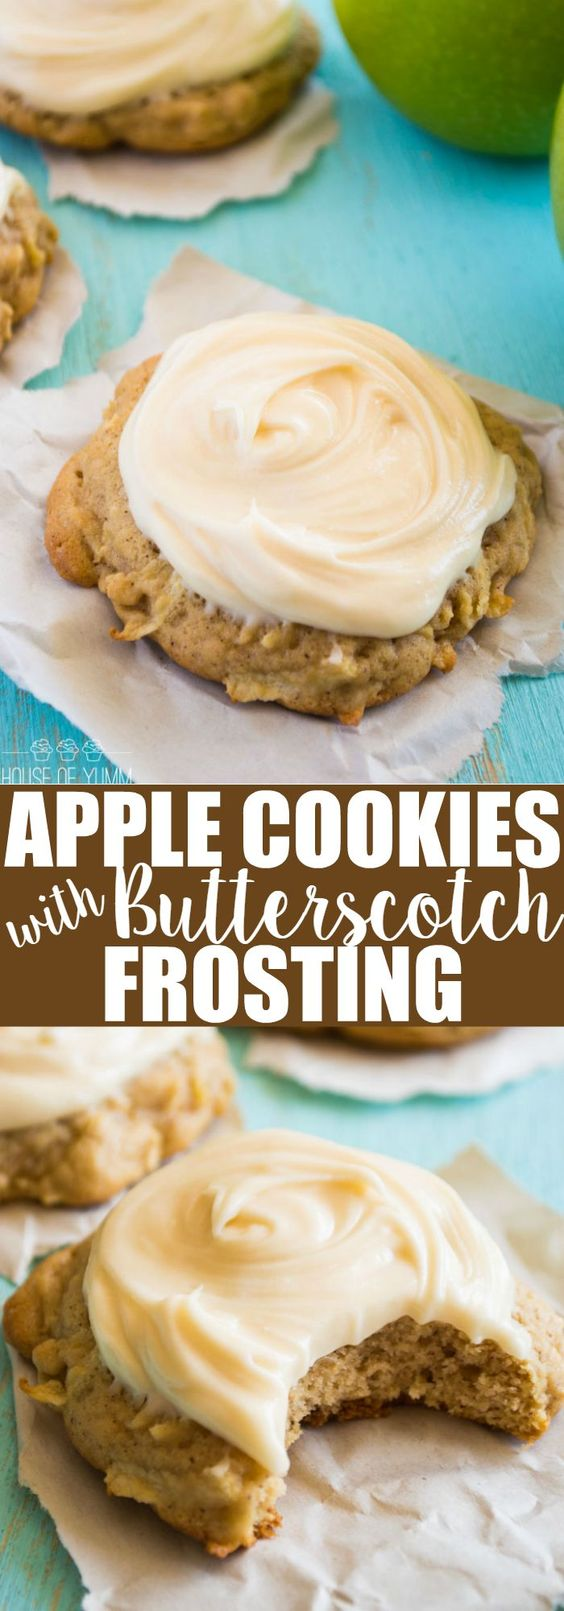 Soft & thick Apple Cookies.  Topped with a sweet, fluffy cream cheese butterscotch frosting.  These are a MUST make!